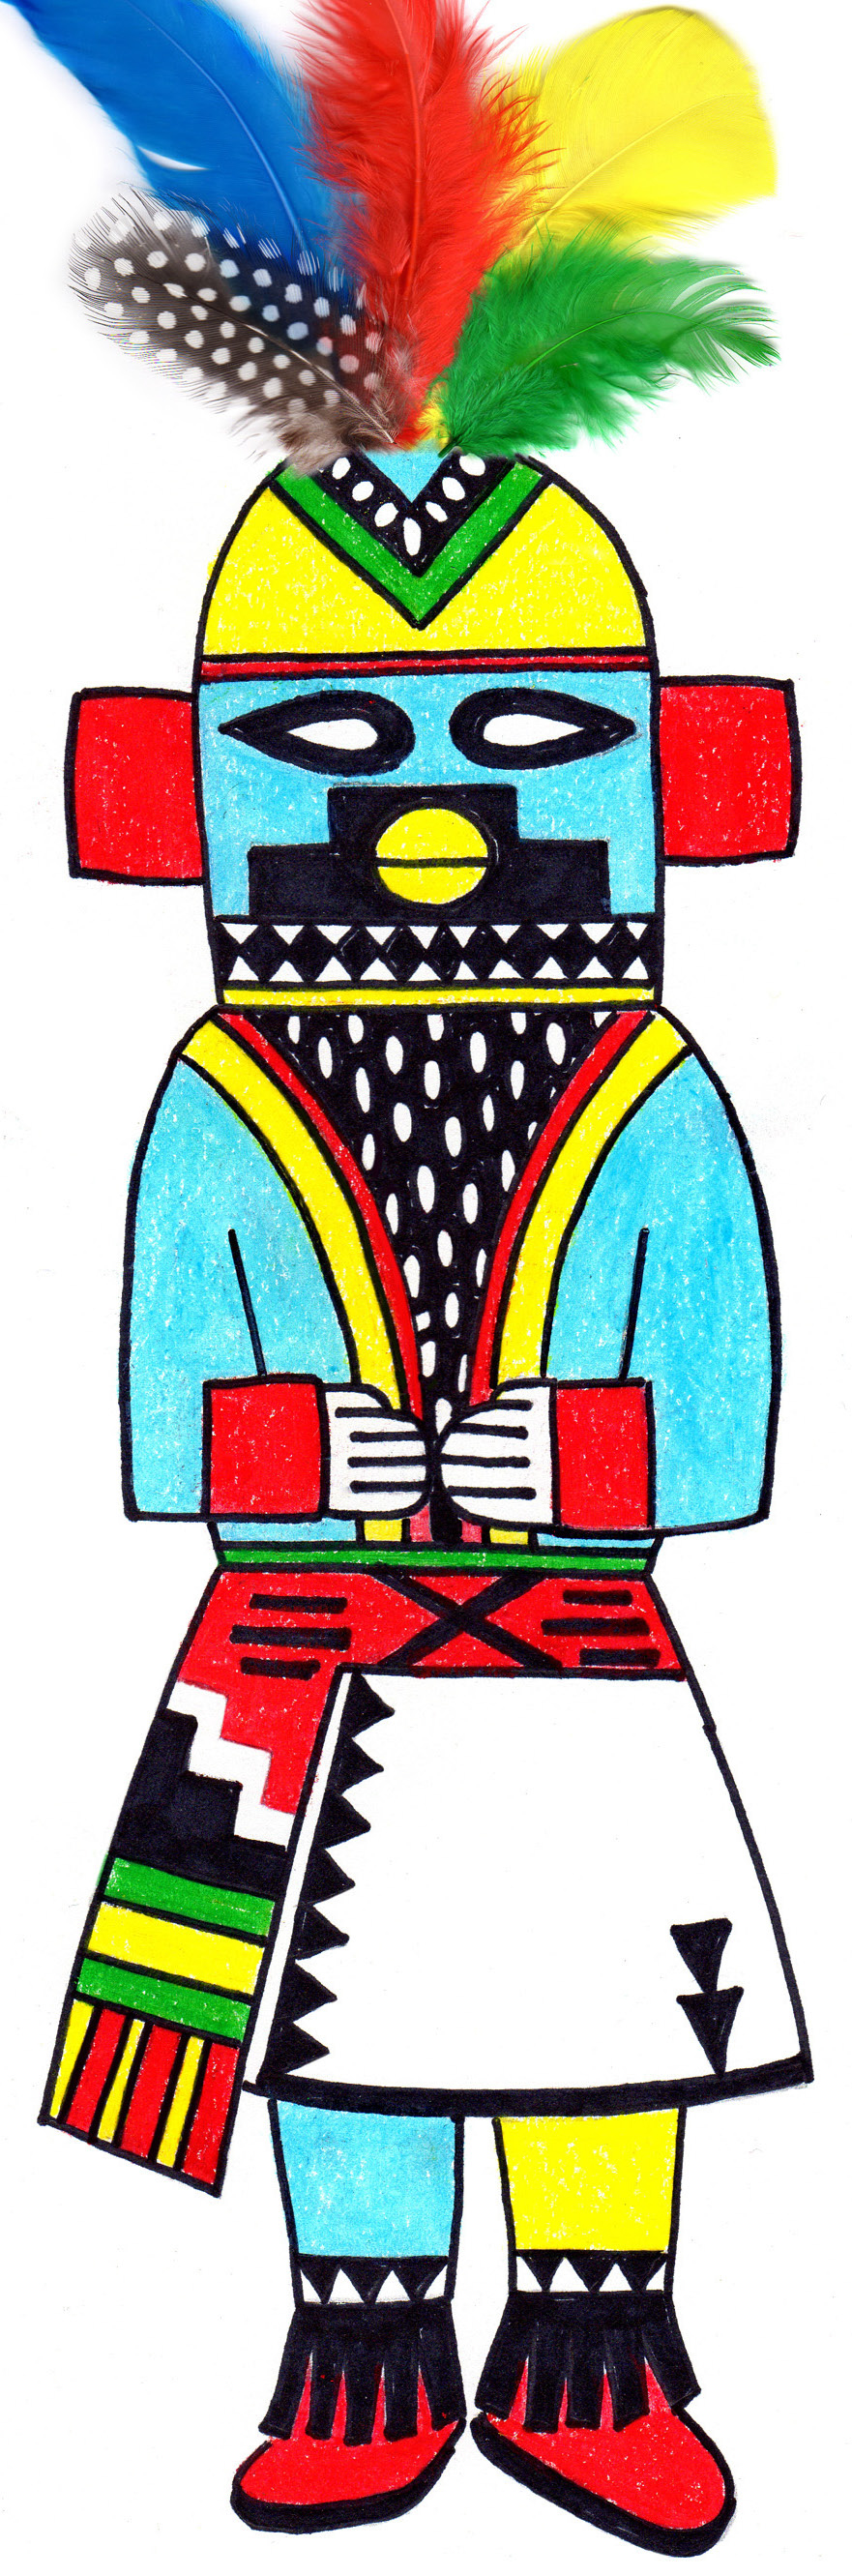 881x2663 Collection Of Kachina Doll Coloring Pages High Quality, Free